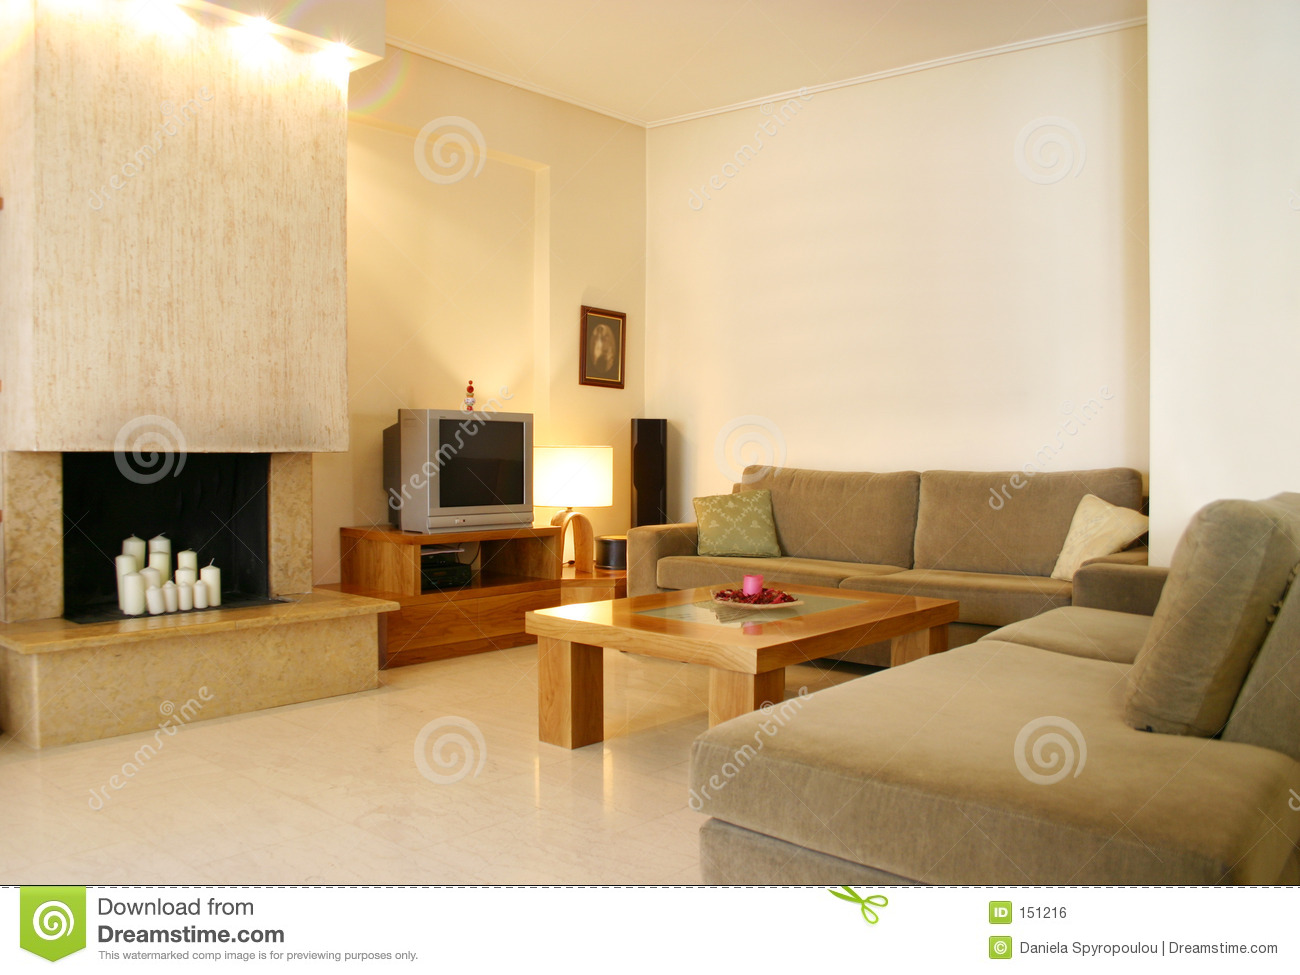 Home interior design stock photo image of modern for Interior design pictures